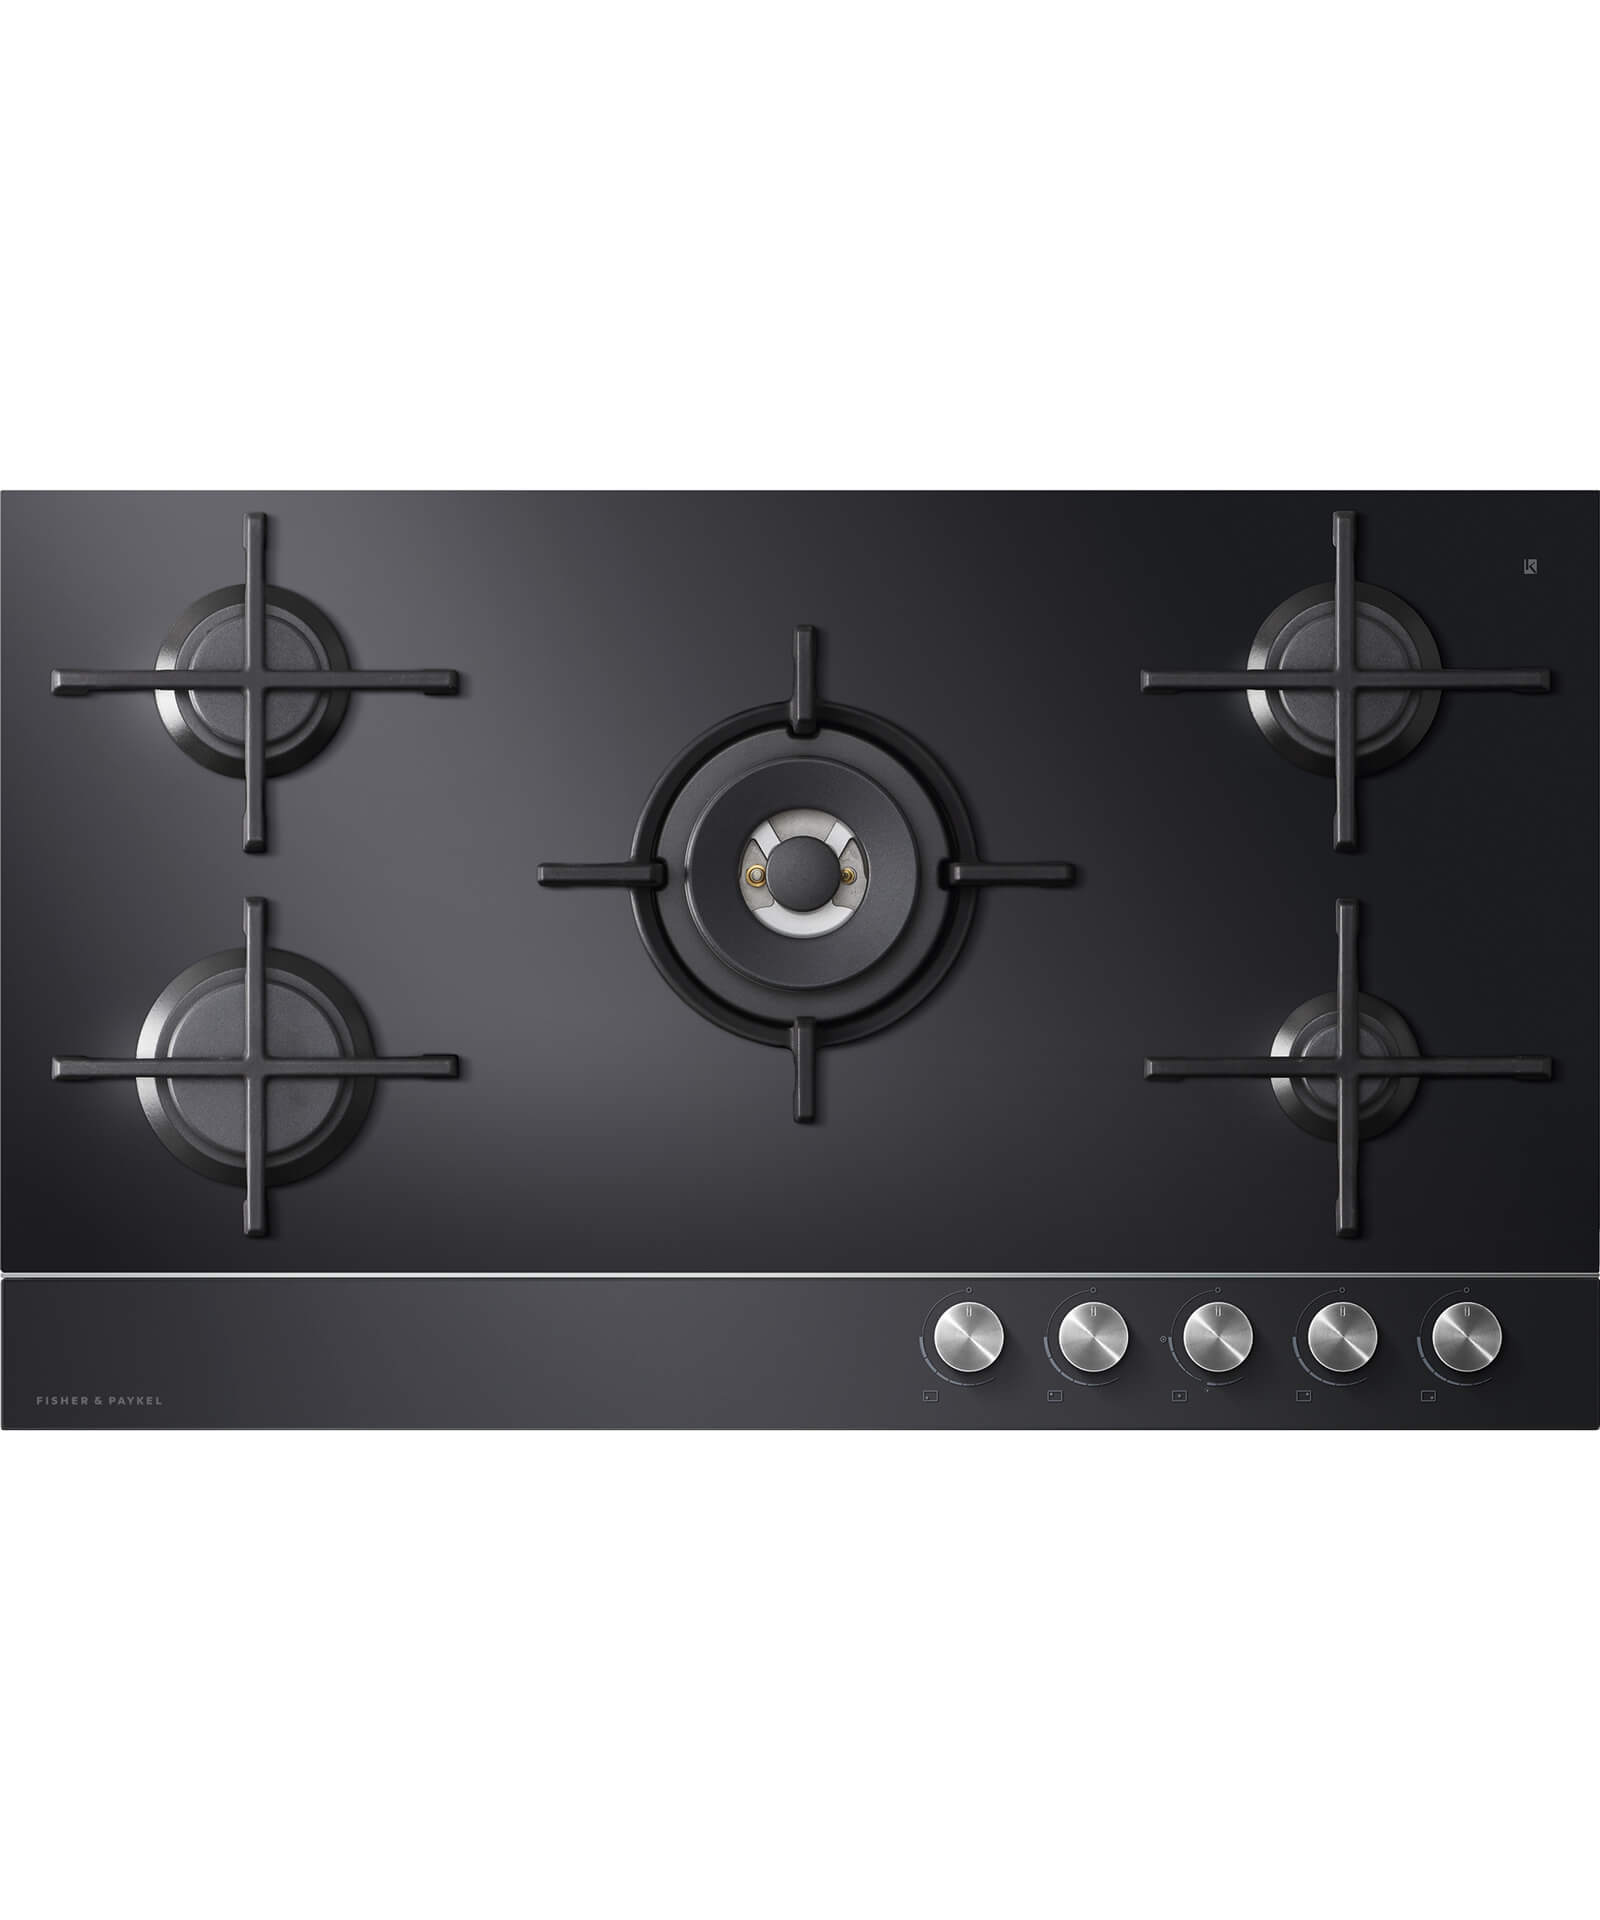 CG905DLPGB1 - 90cm Gas on Glass Cooktop - 81394